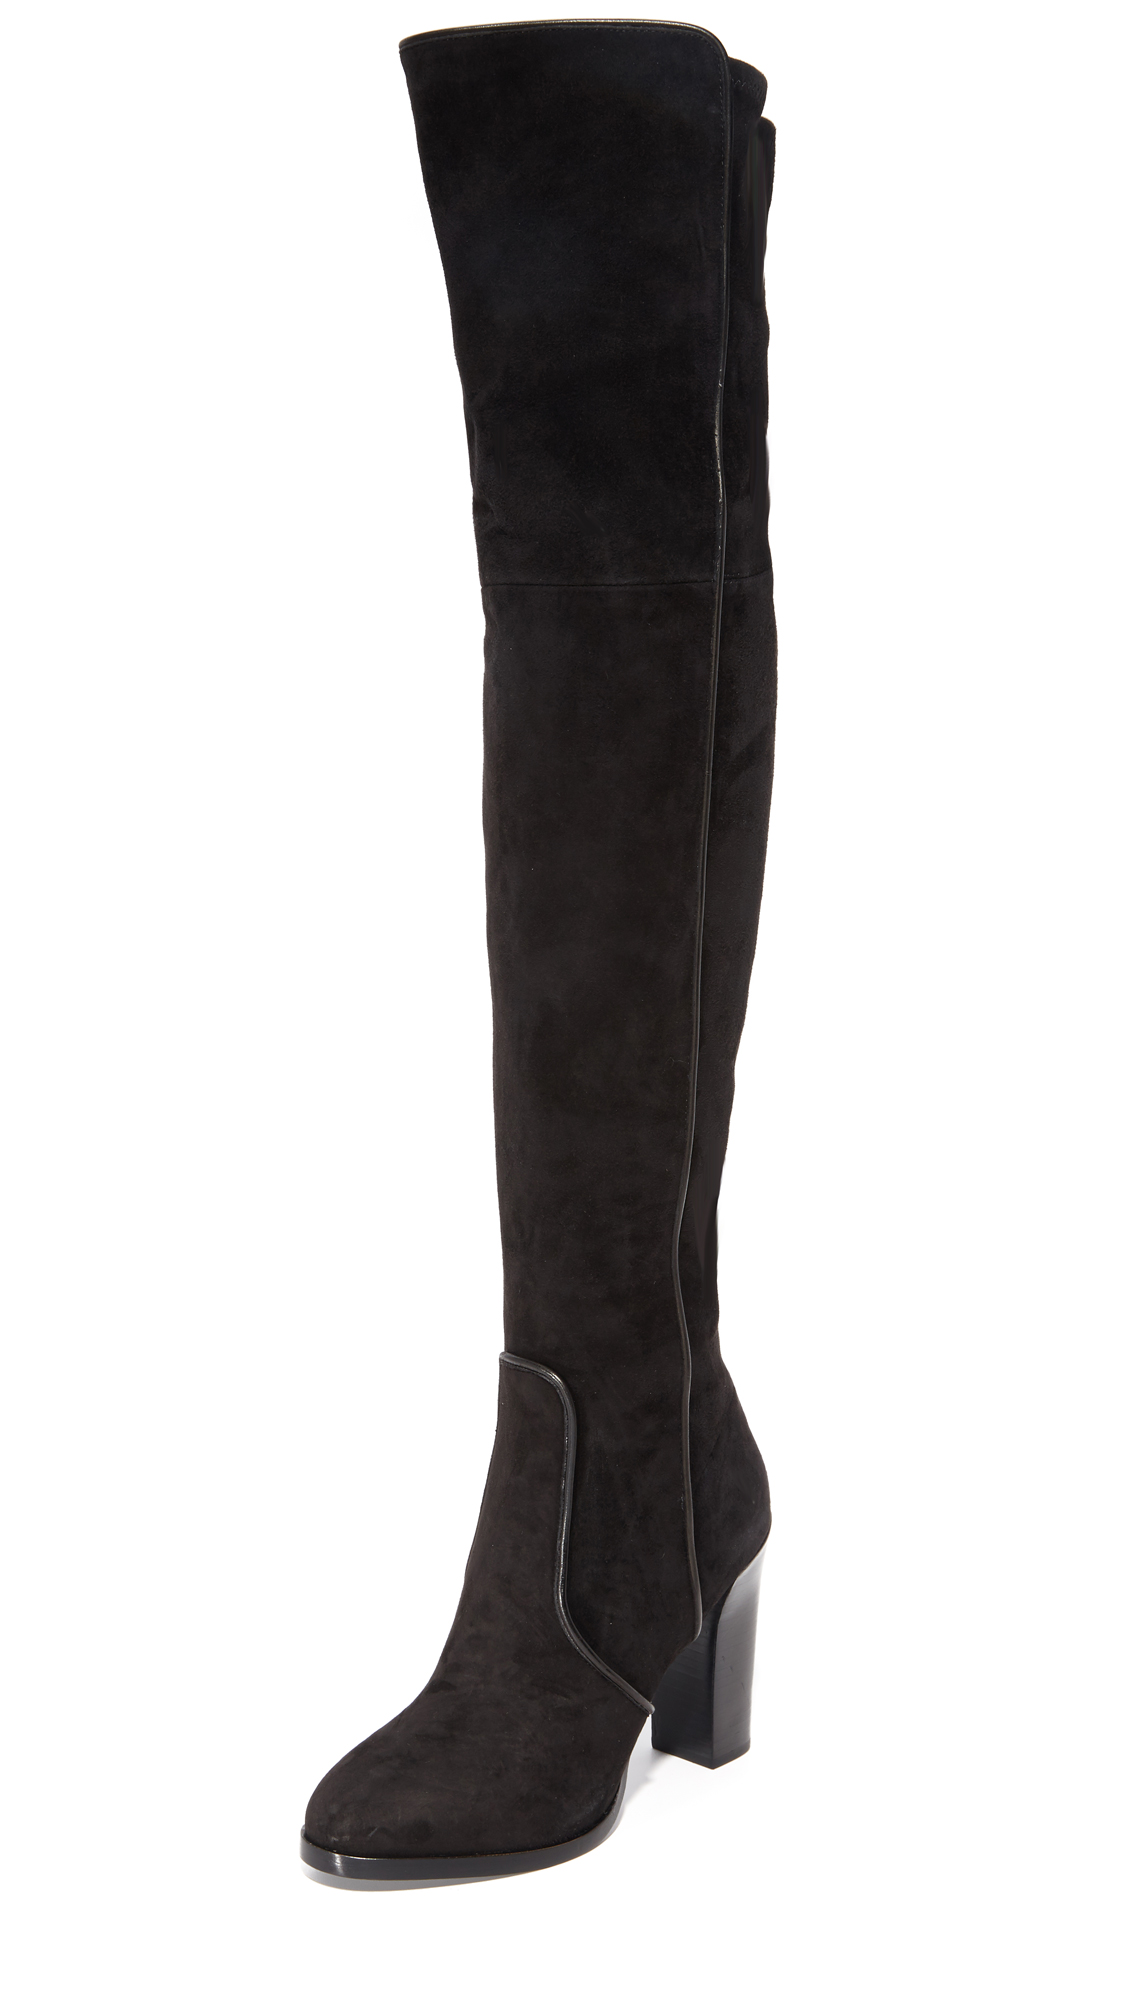 Michael Kors Collection Cutler Over The Knee Boots - Black